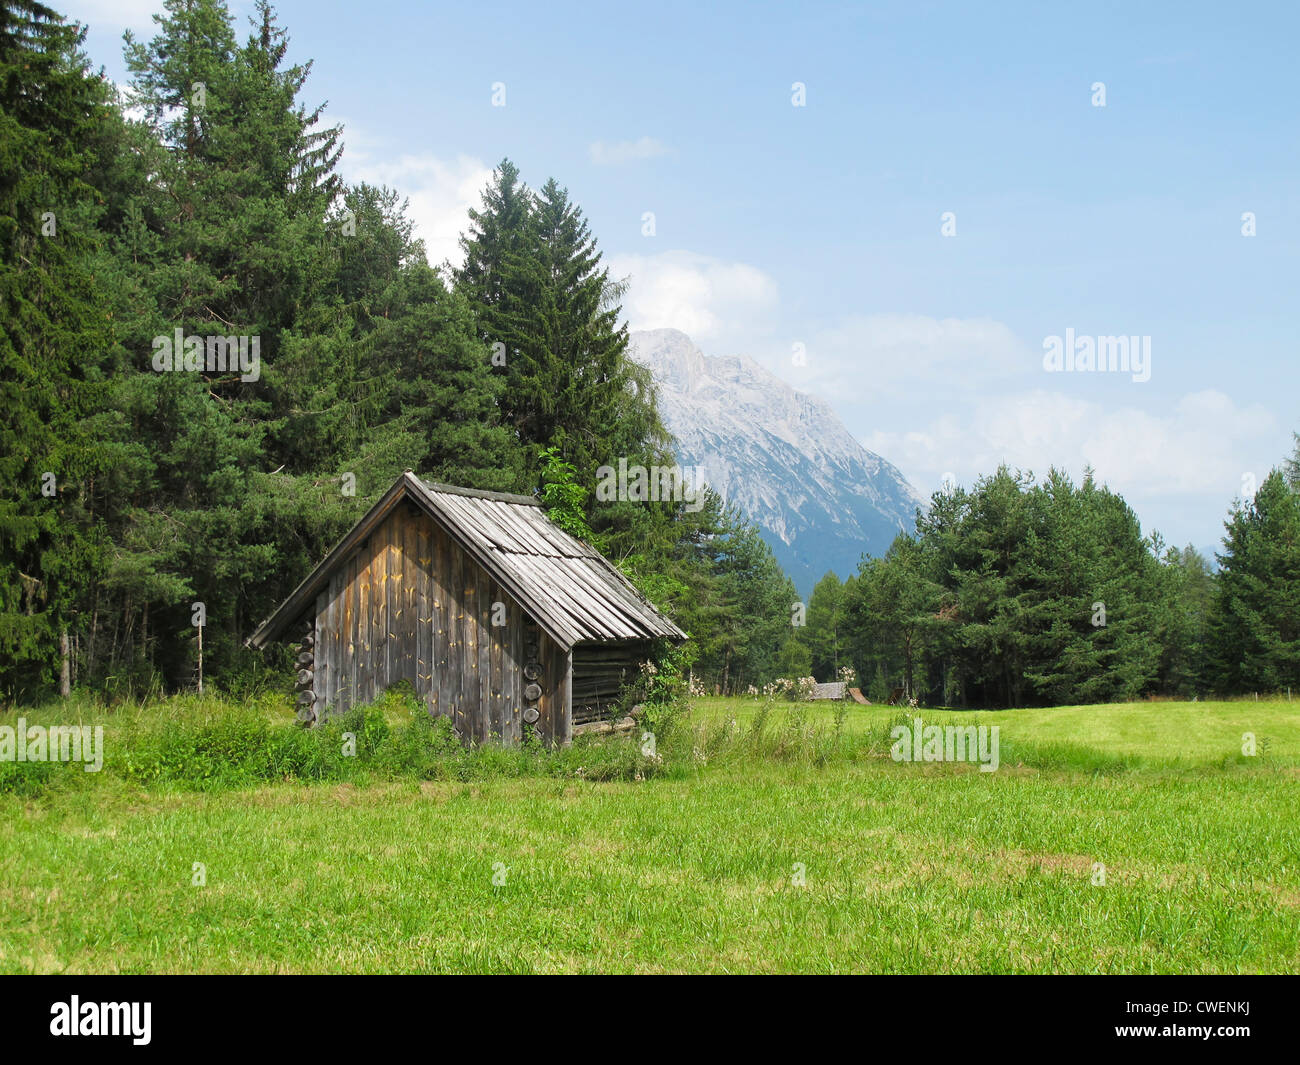 A mountain cabin in the Tyrolean Alps in Obsteig. - Stock Image